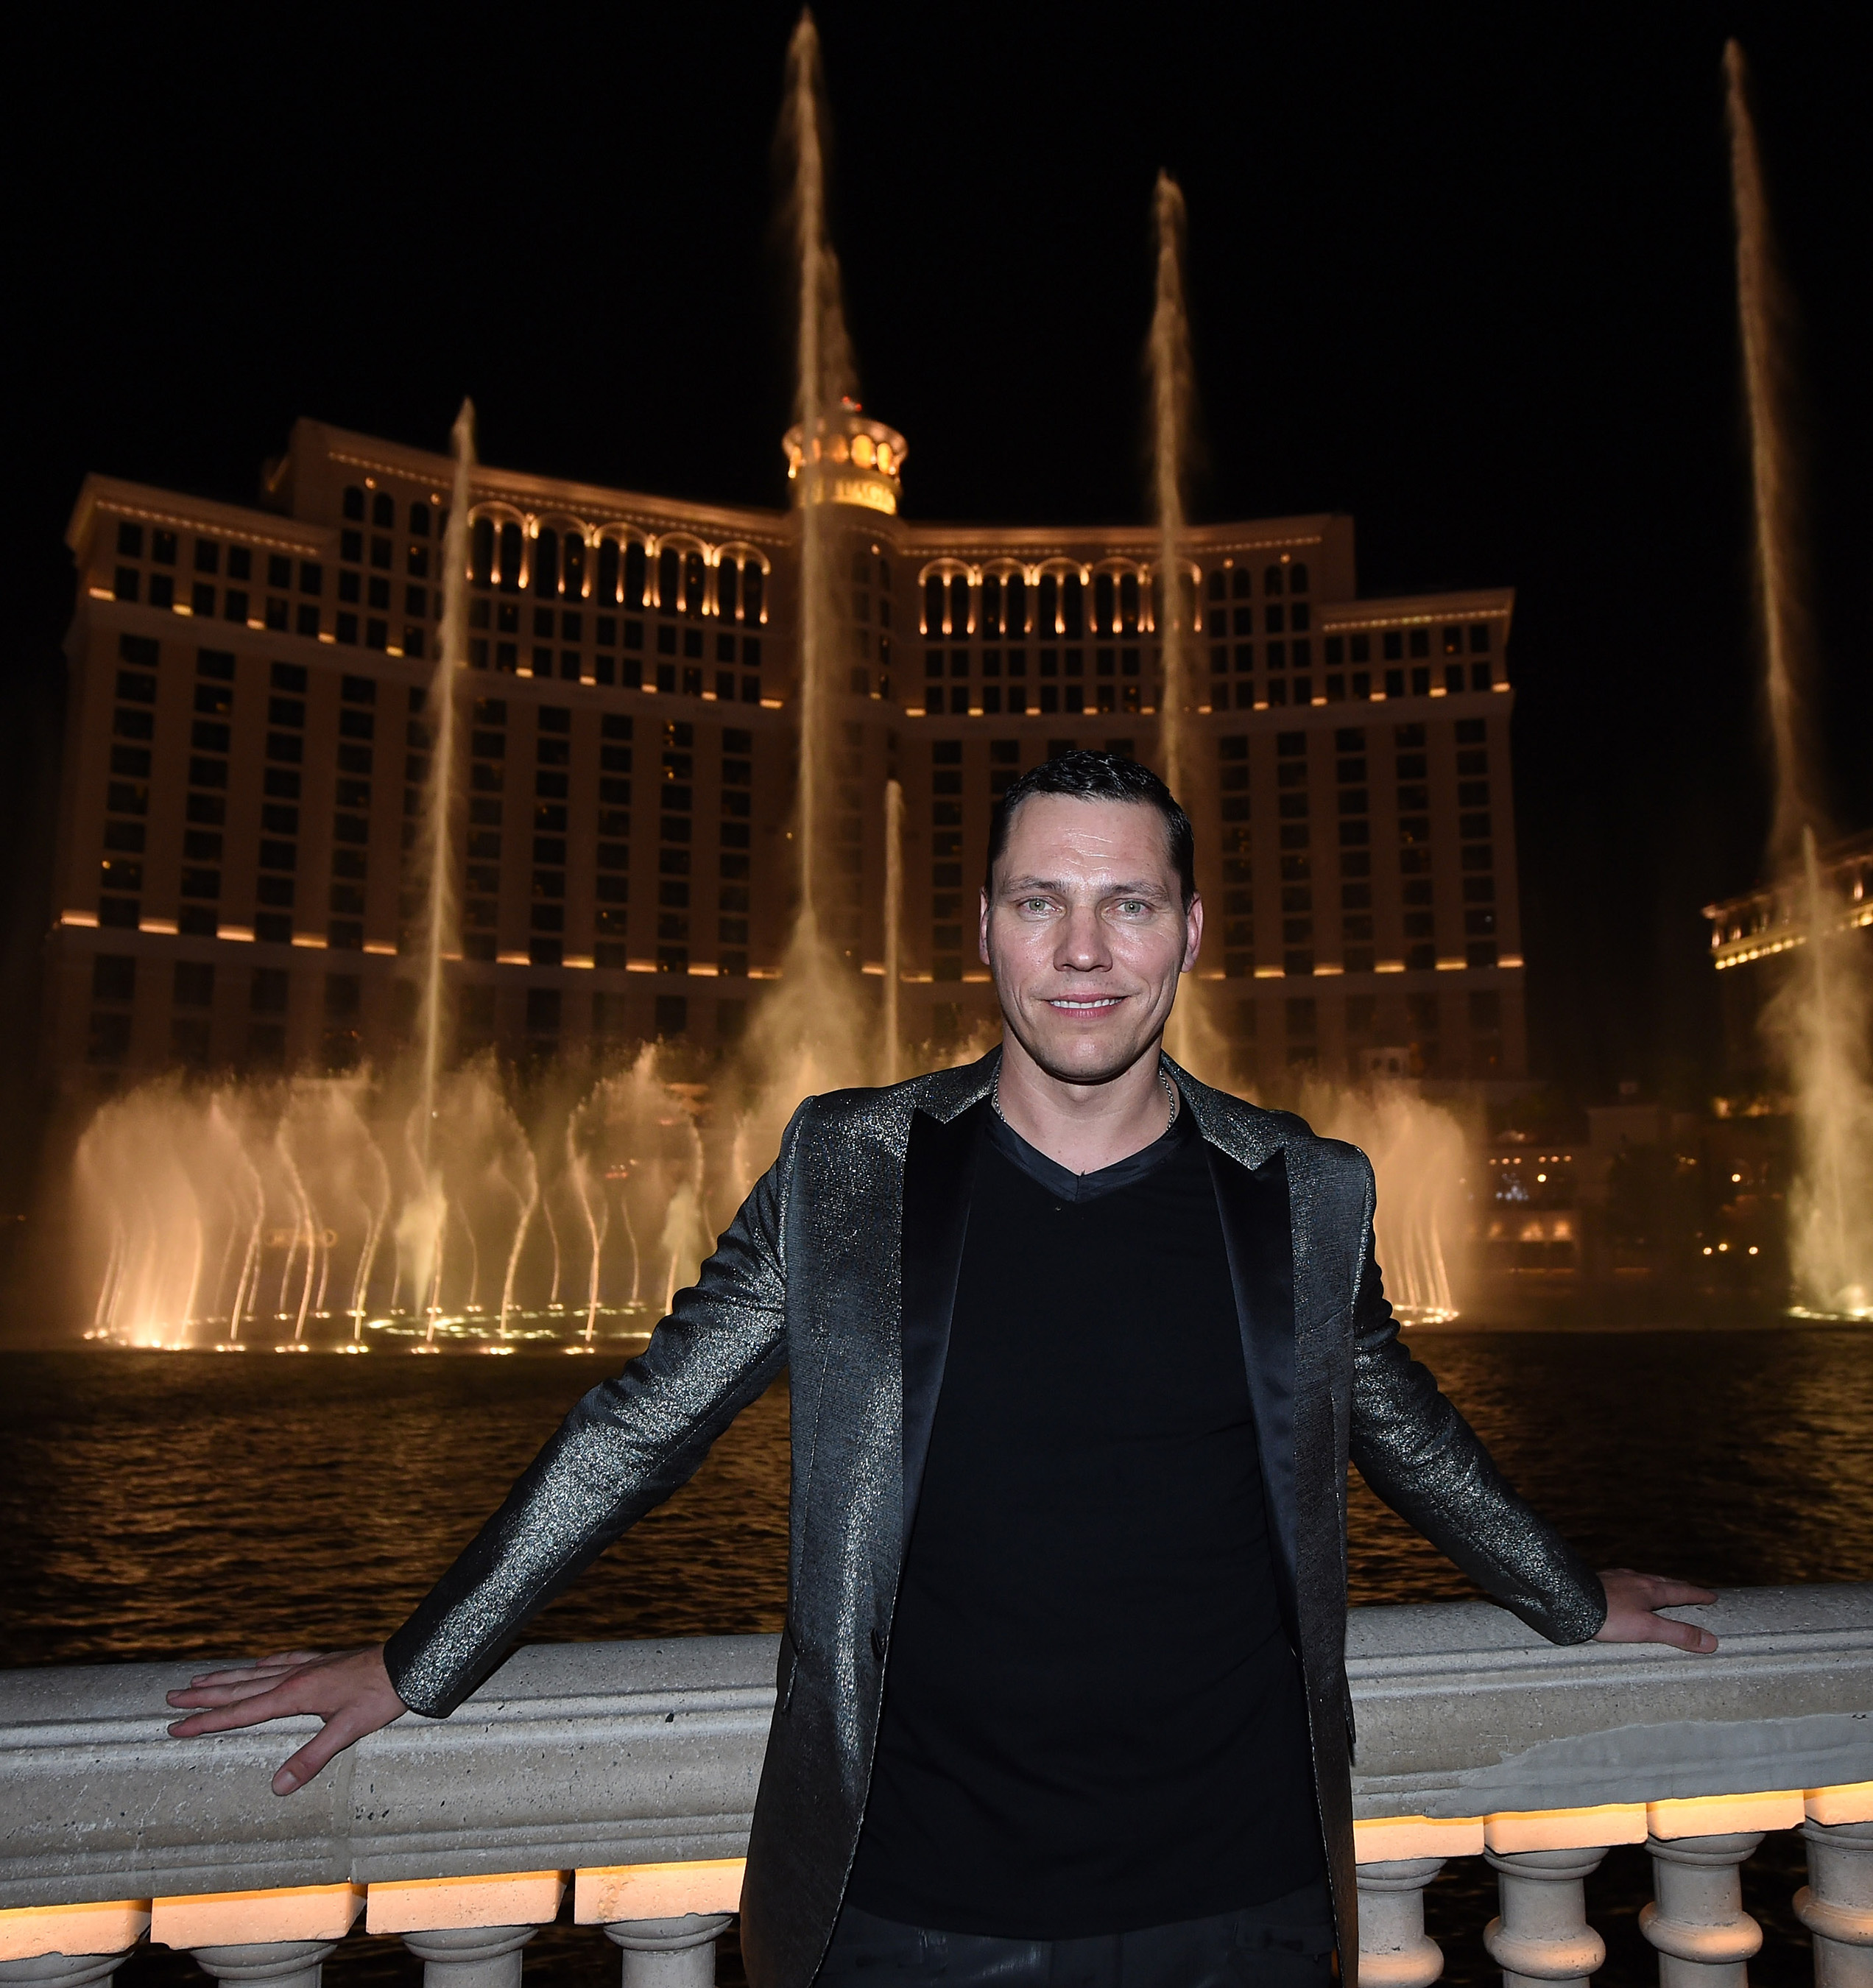 On Sept. 17, Tiesto unveiled the newest Fountains of Bellagio show set to three songs off of his new album, A Town Called Paradise. (Credit Ethan Miller for Bellagio)